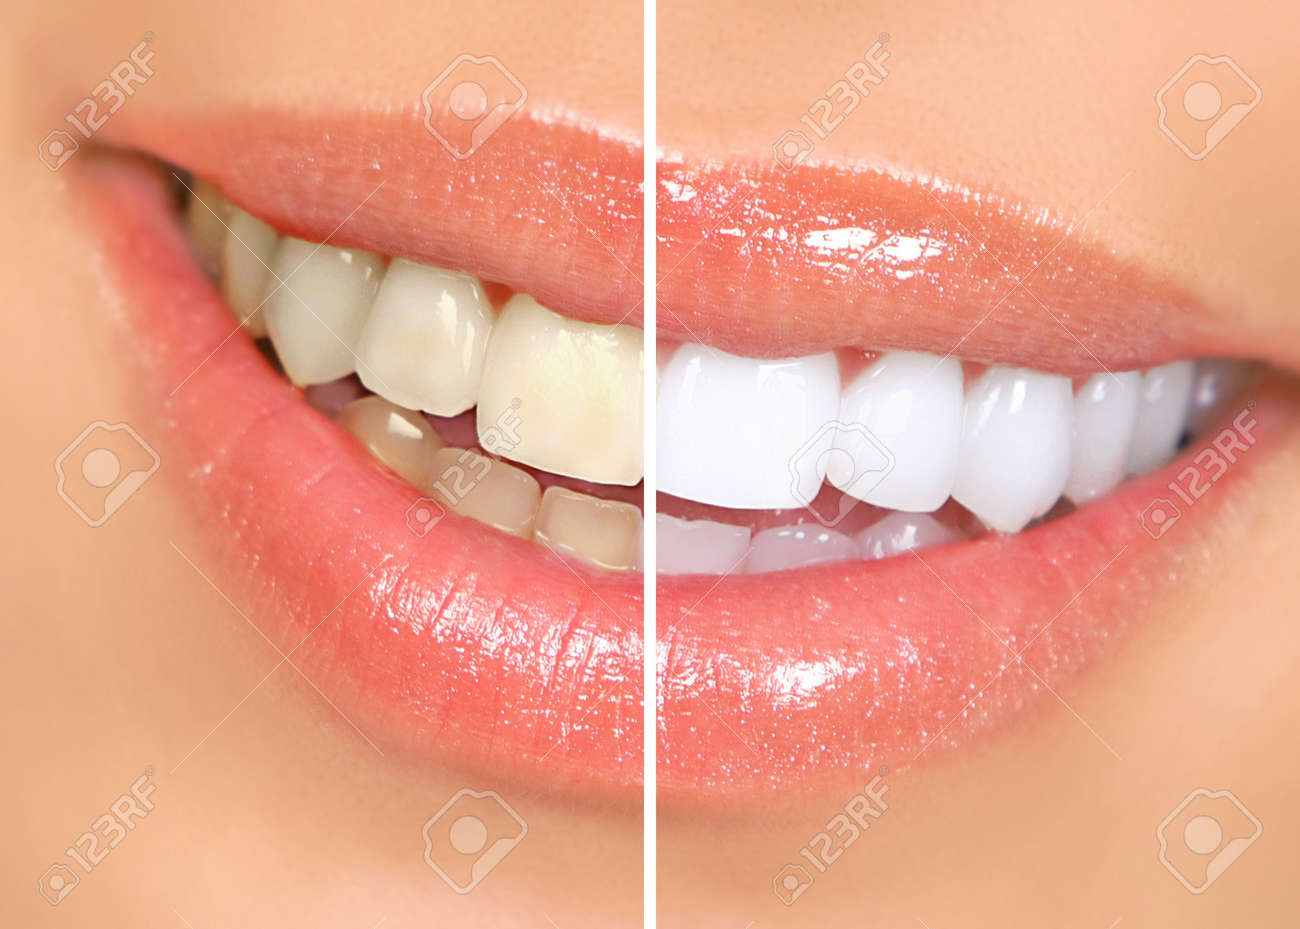 Mouth and teeth before and after whitening - 7251819